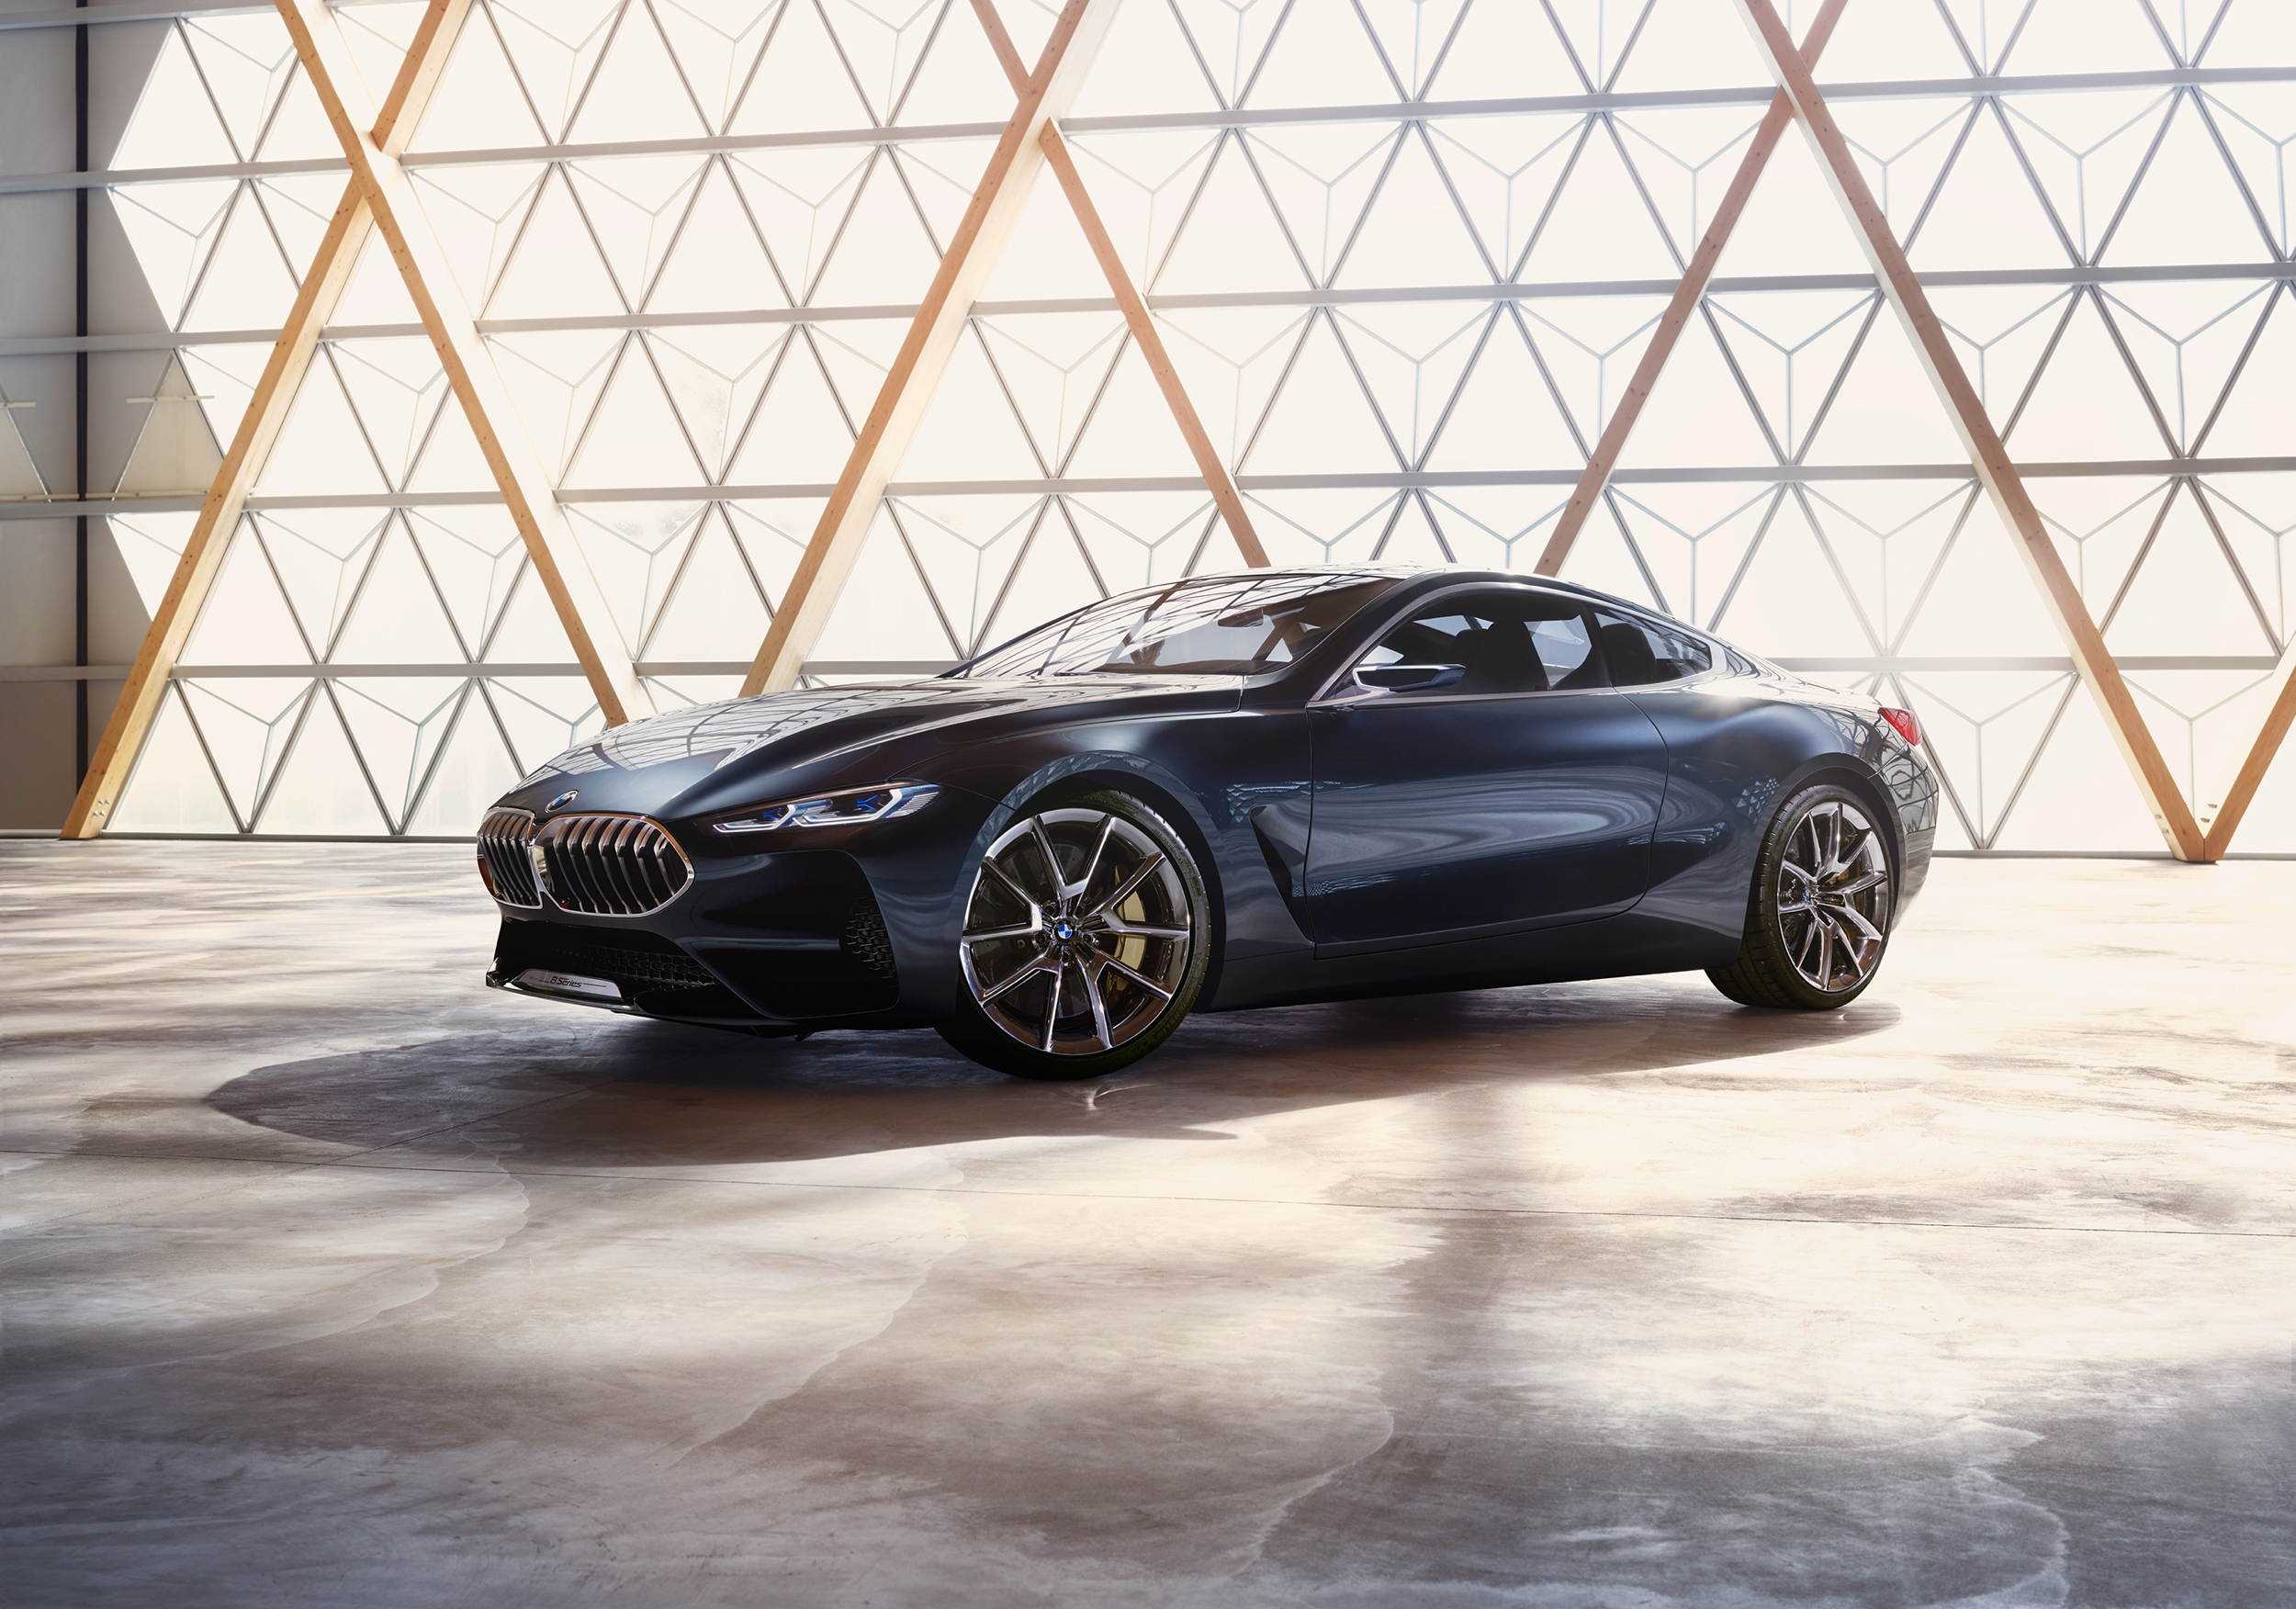 BMW Concept 8 Series front angle 2